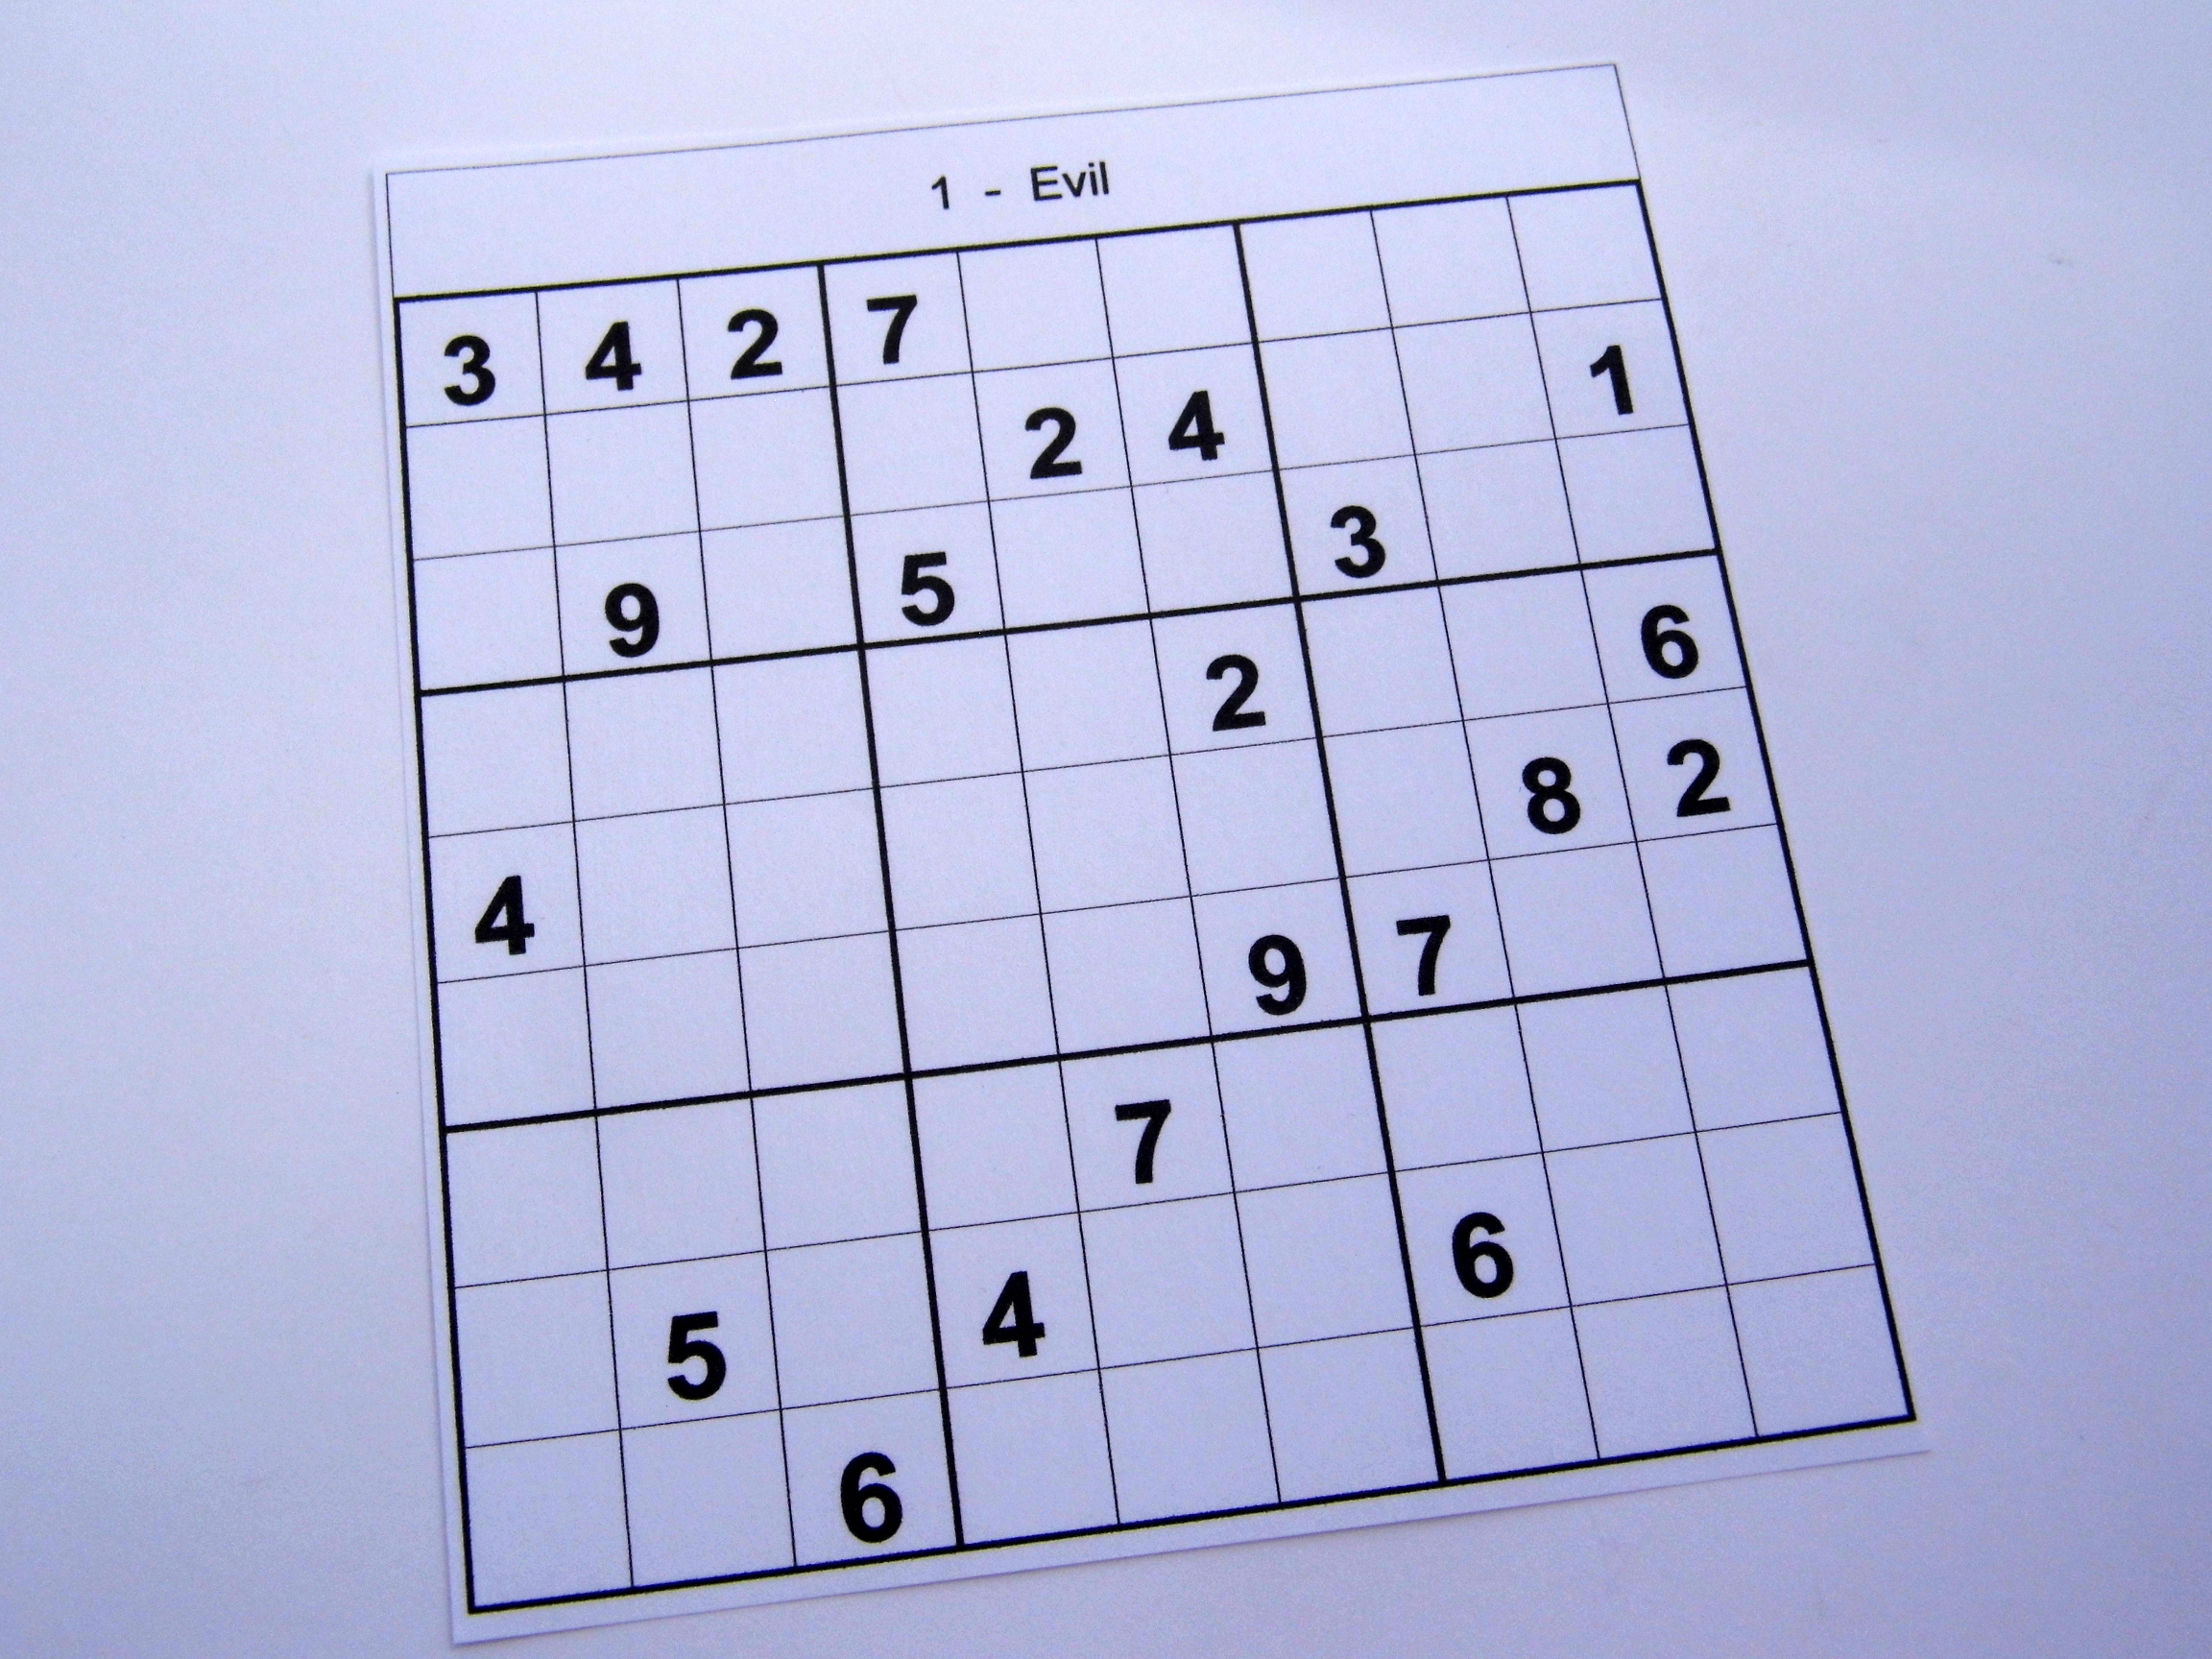 Hard Printable Sudoku Puzzles 2 Per Page – Book 1 – Free Sudoku Puzzles - Printable Sudoku Puzzles One Per Page